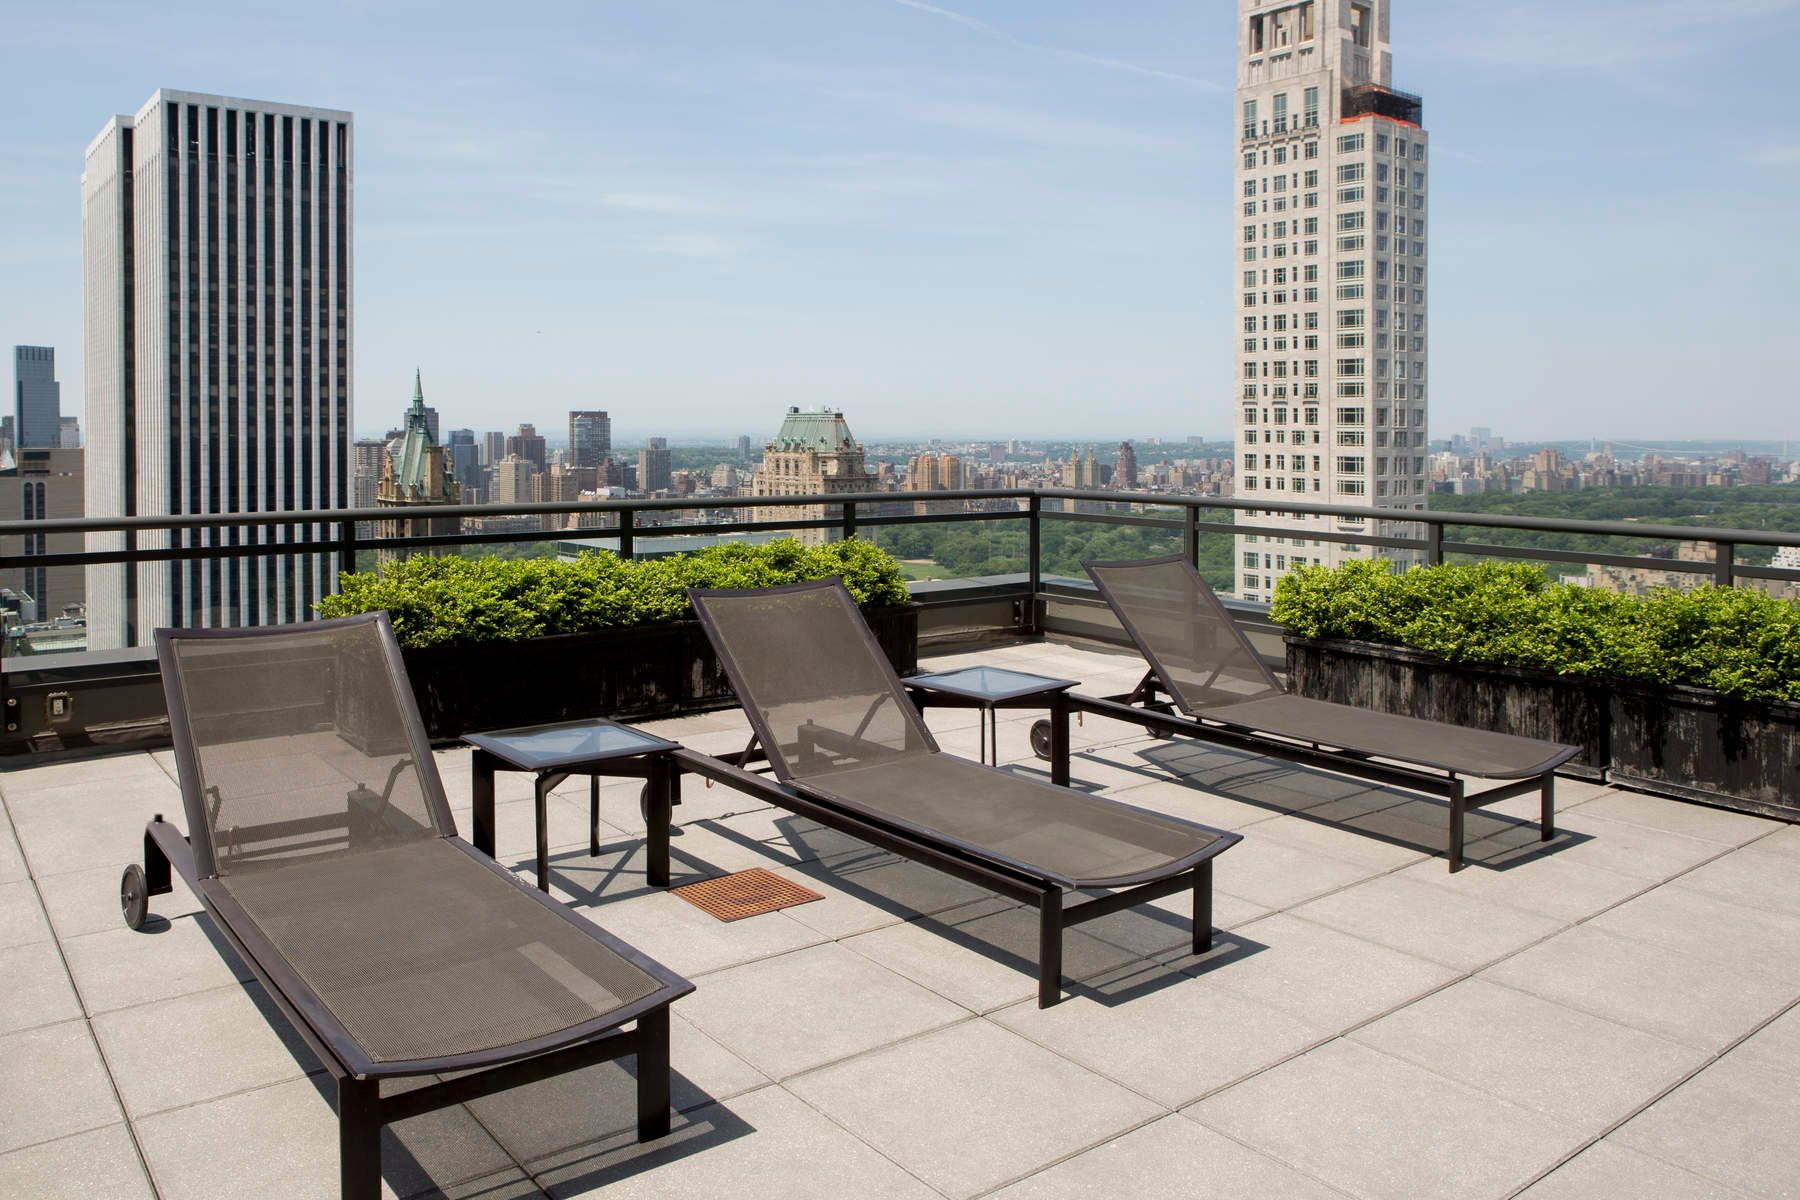 Martine Capdevielle_Luxury Real Estate NYC_117 EAST 57TH STREET APT 34h7.jpg